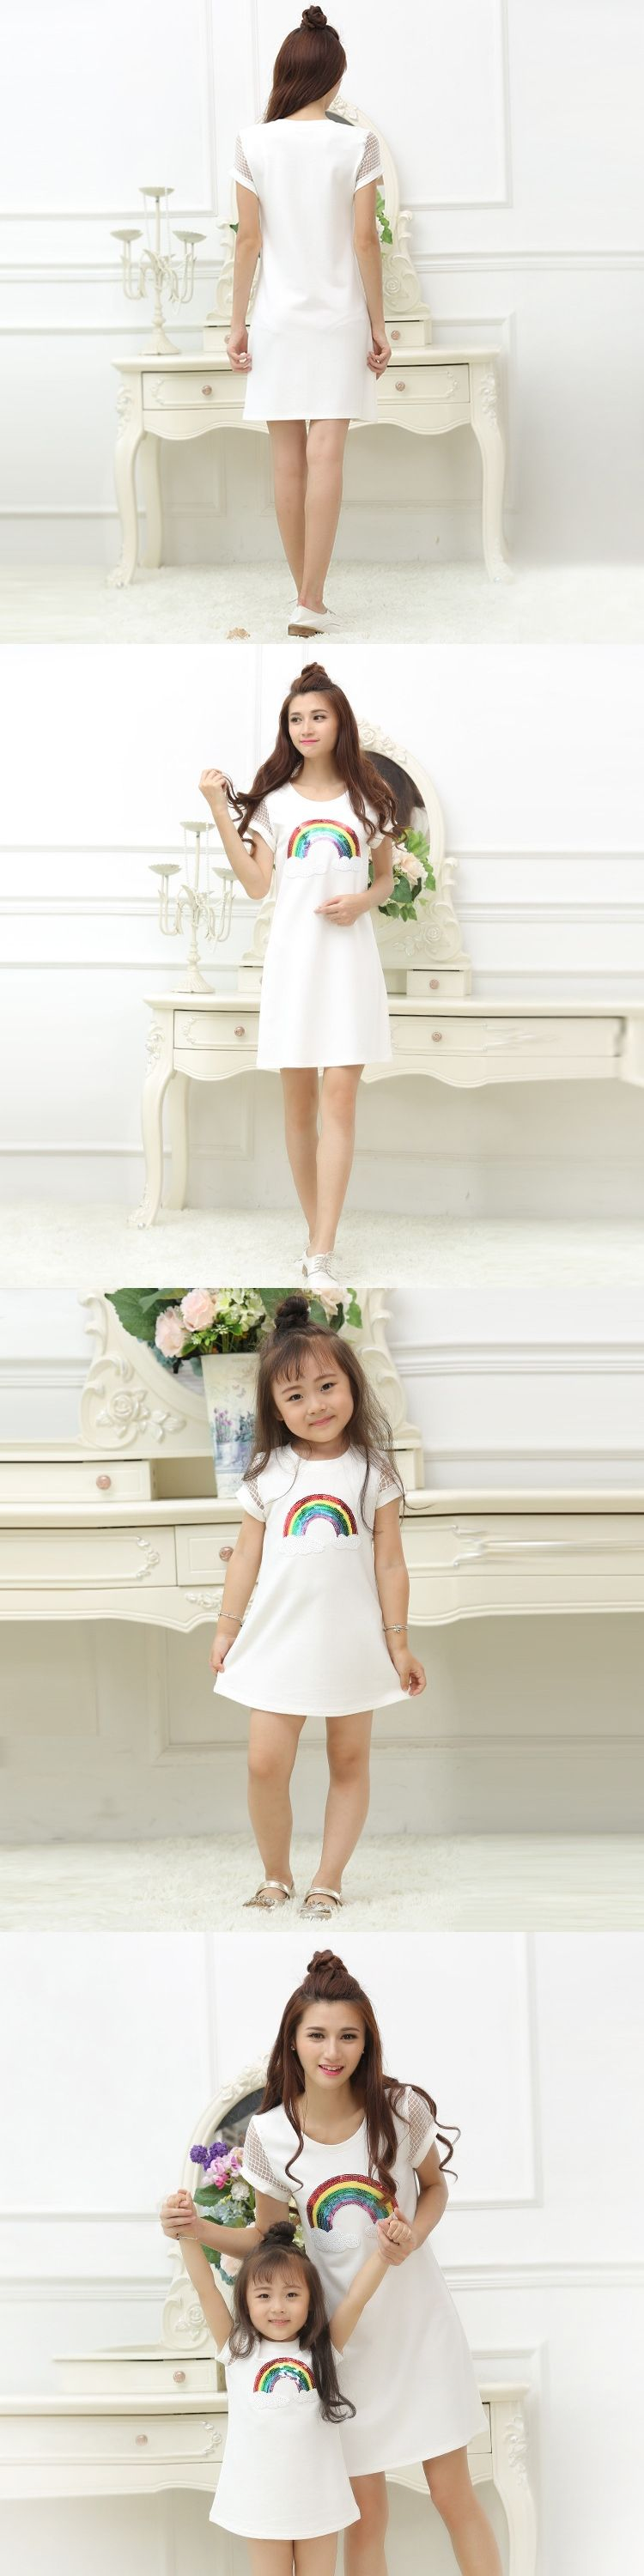 rainbow printing white t shirt dress mom and daughter matching